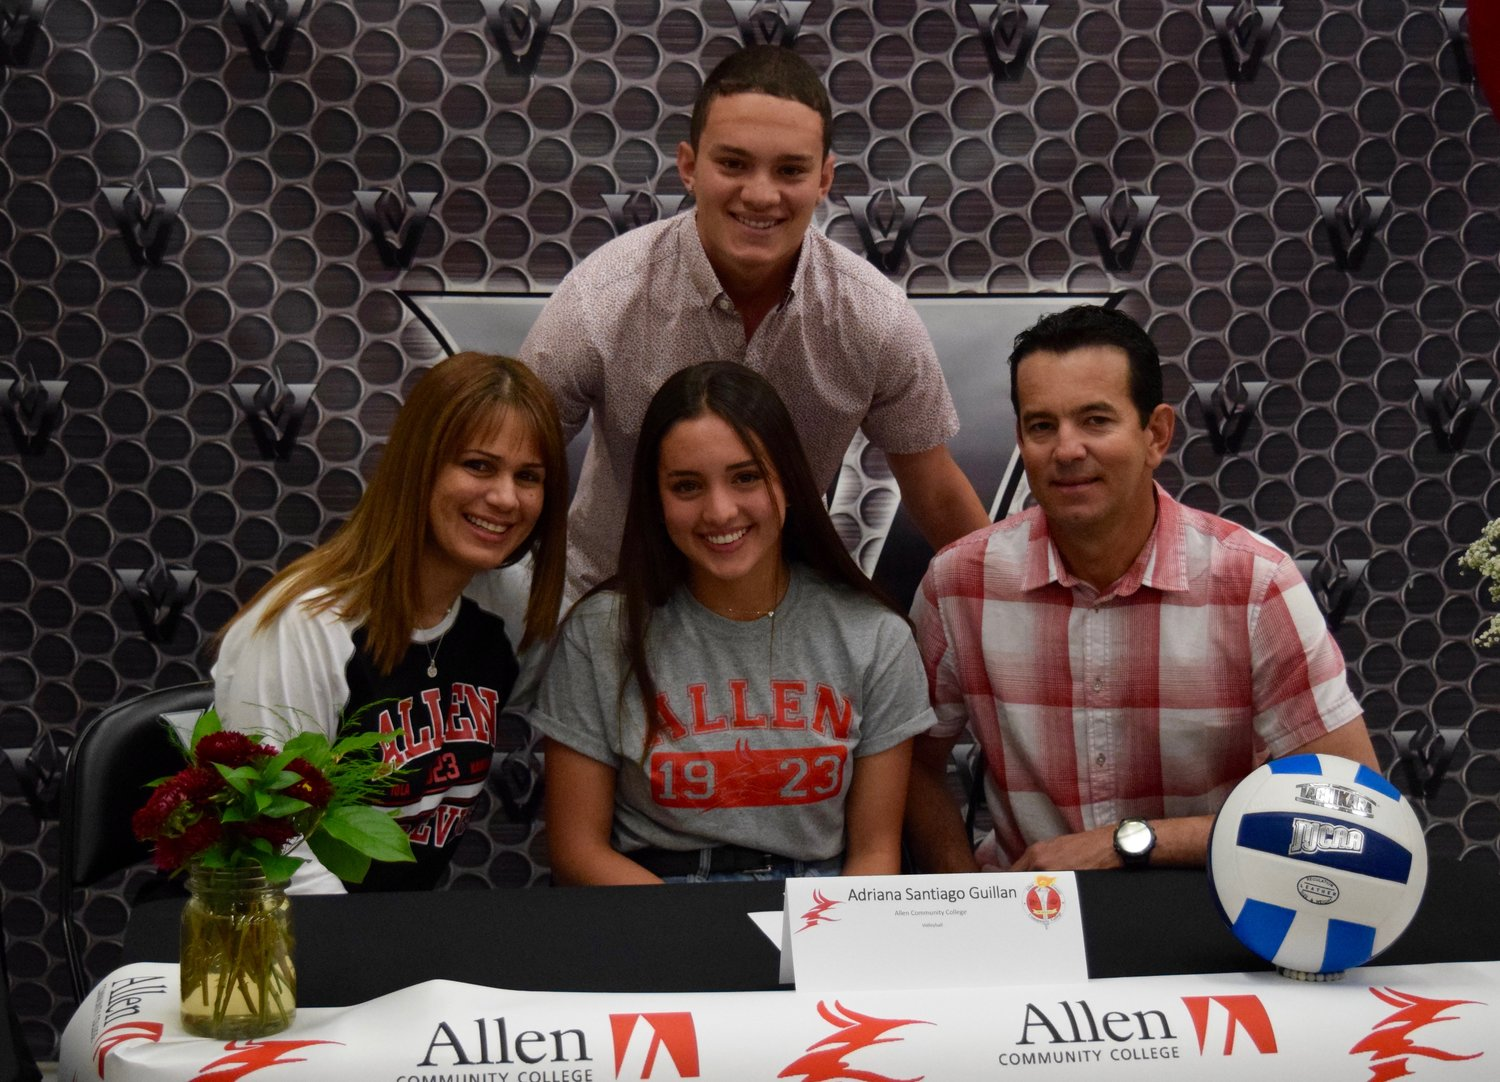 Adriana Santiago Guillan signed to play volleyball at Allen Community College at a ceremony Tuesday morning at Vandegrift High School.